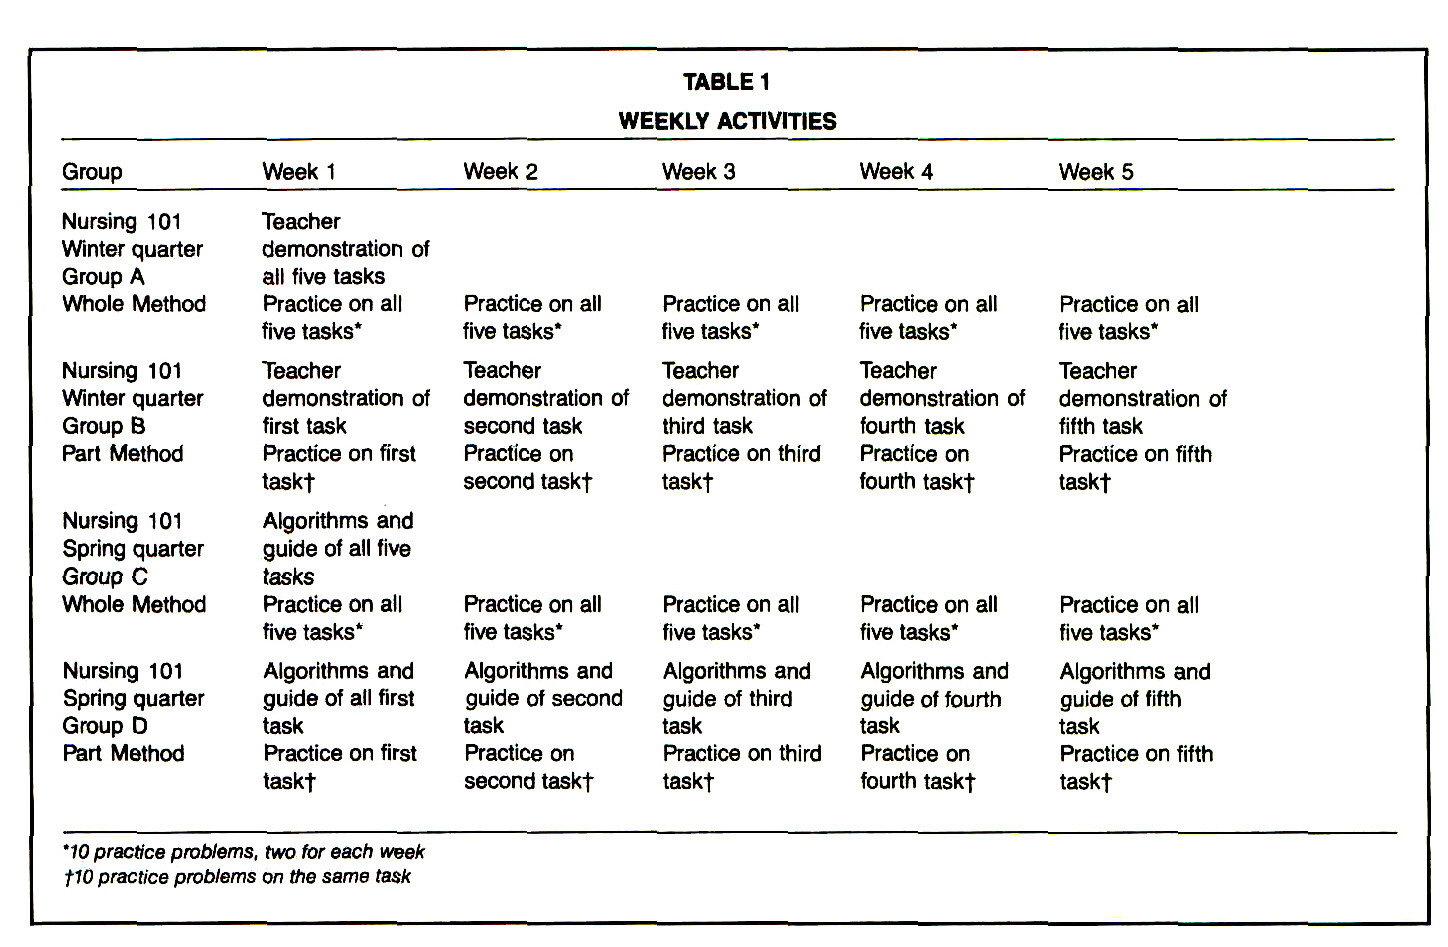 TABLE 1WEEKLY ACTIVITIES